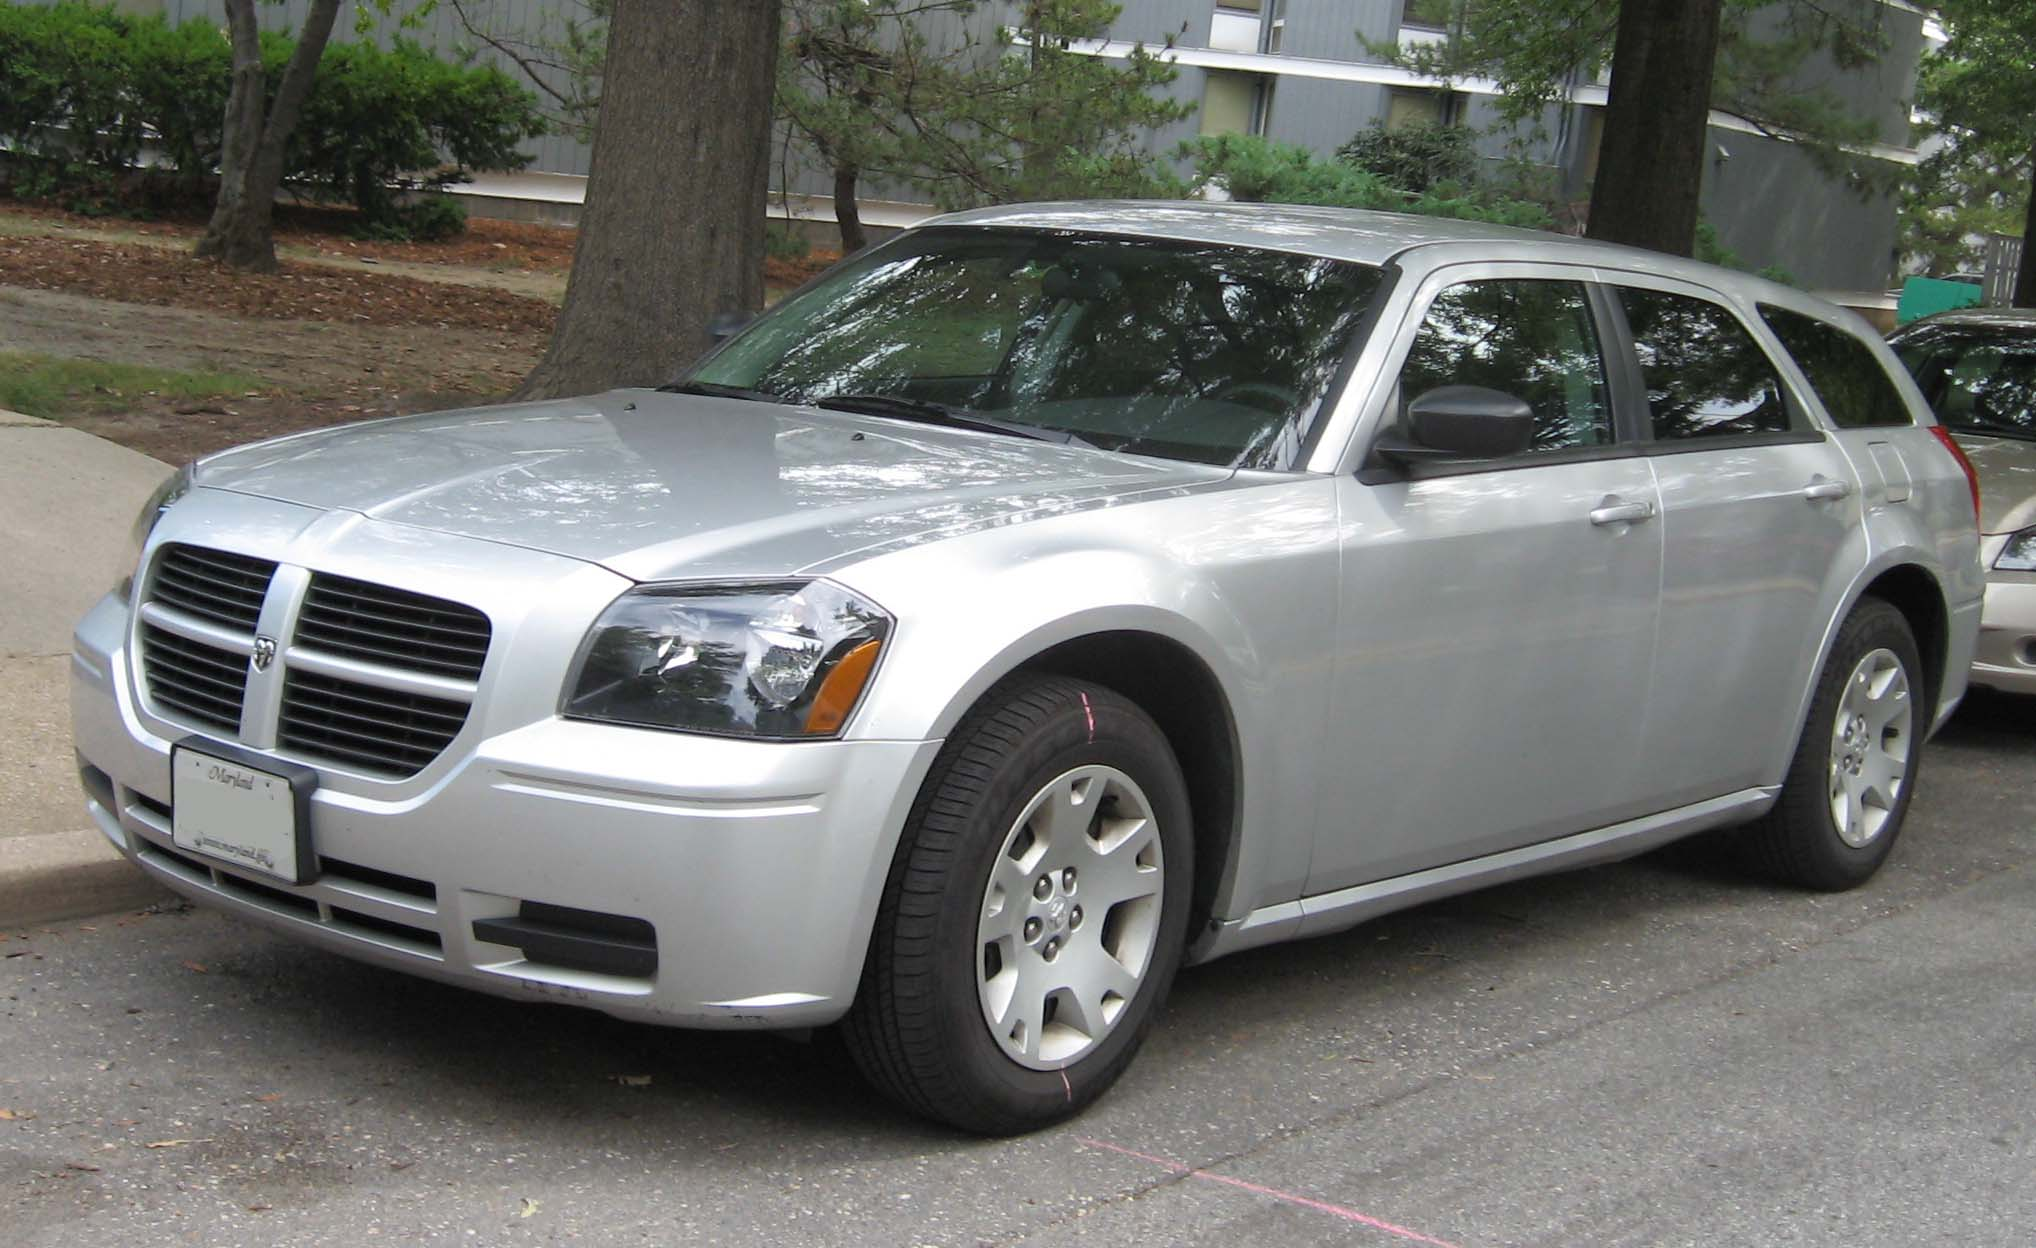 2005 Dodge Magnum Information And Photos Momentcar Blower Motor Wiring Diagram 7